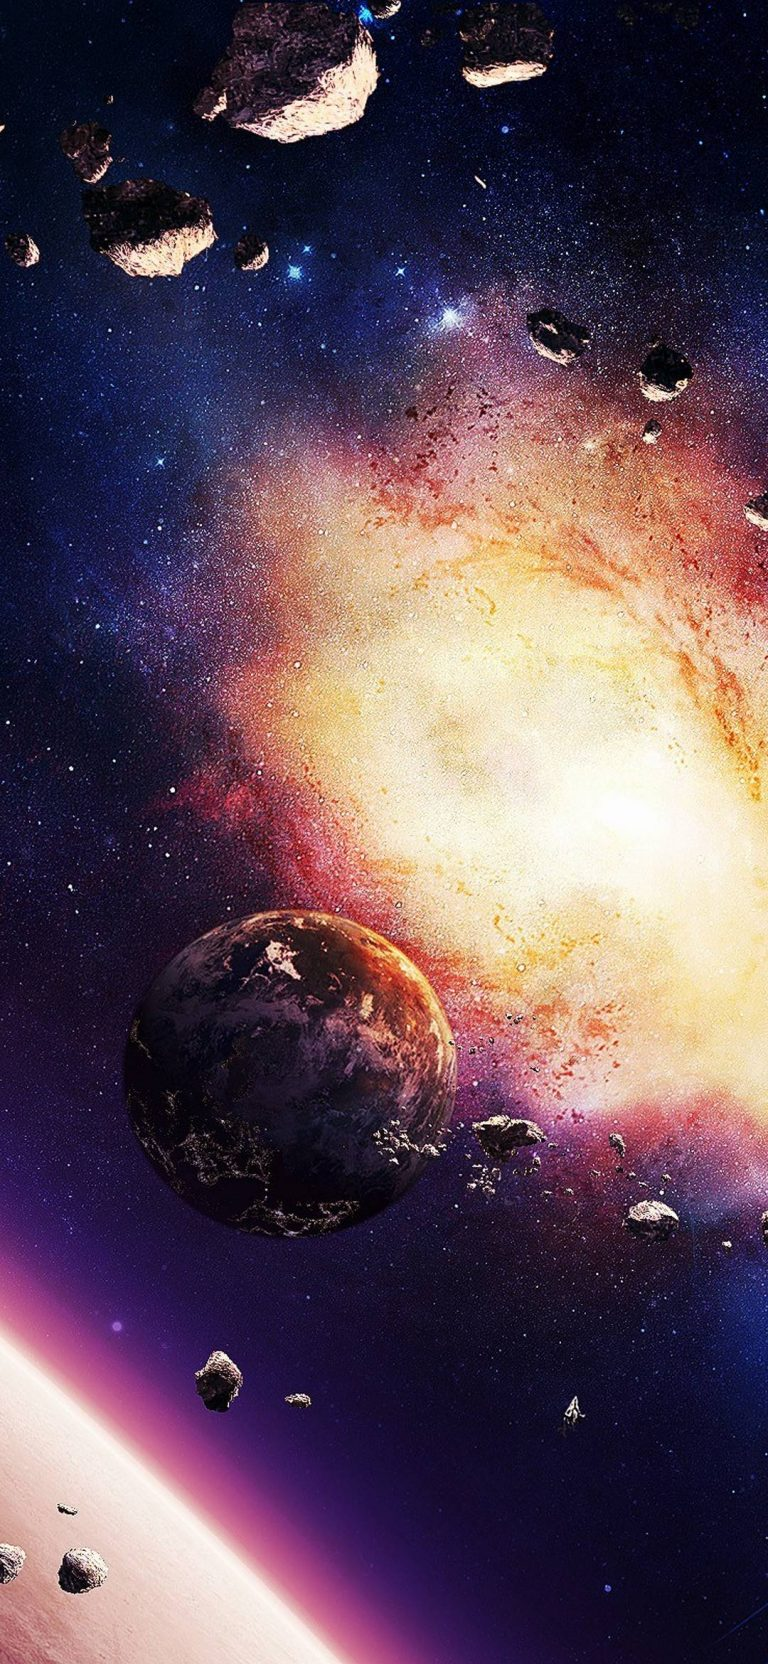 Space Planet Explosion 1080x2340 768x1664